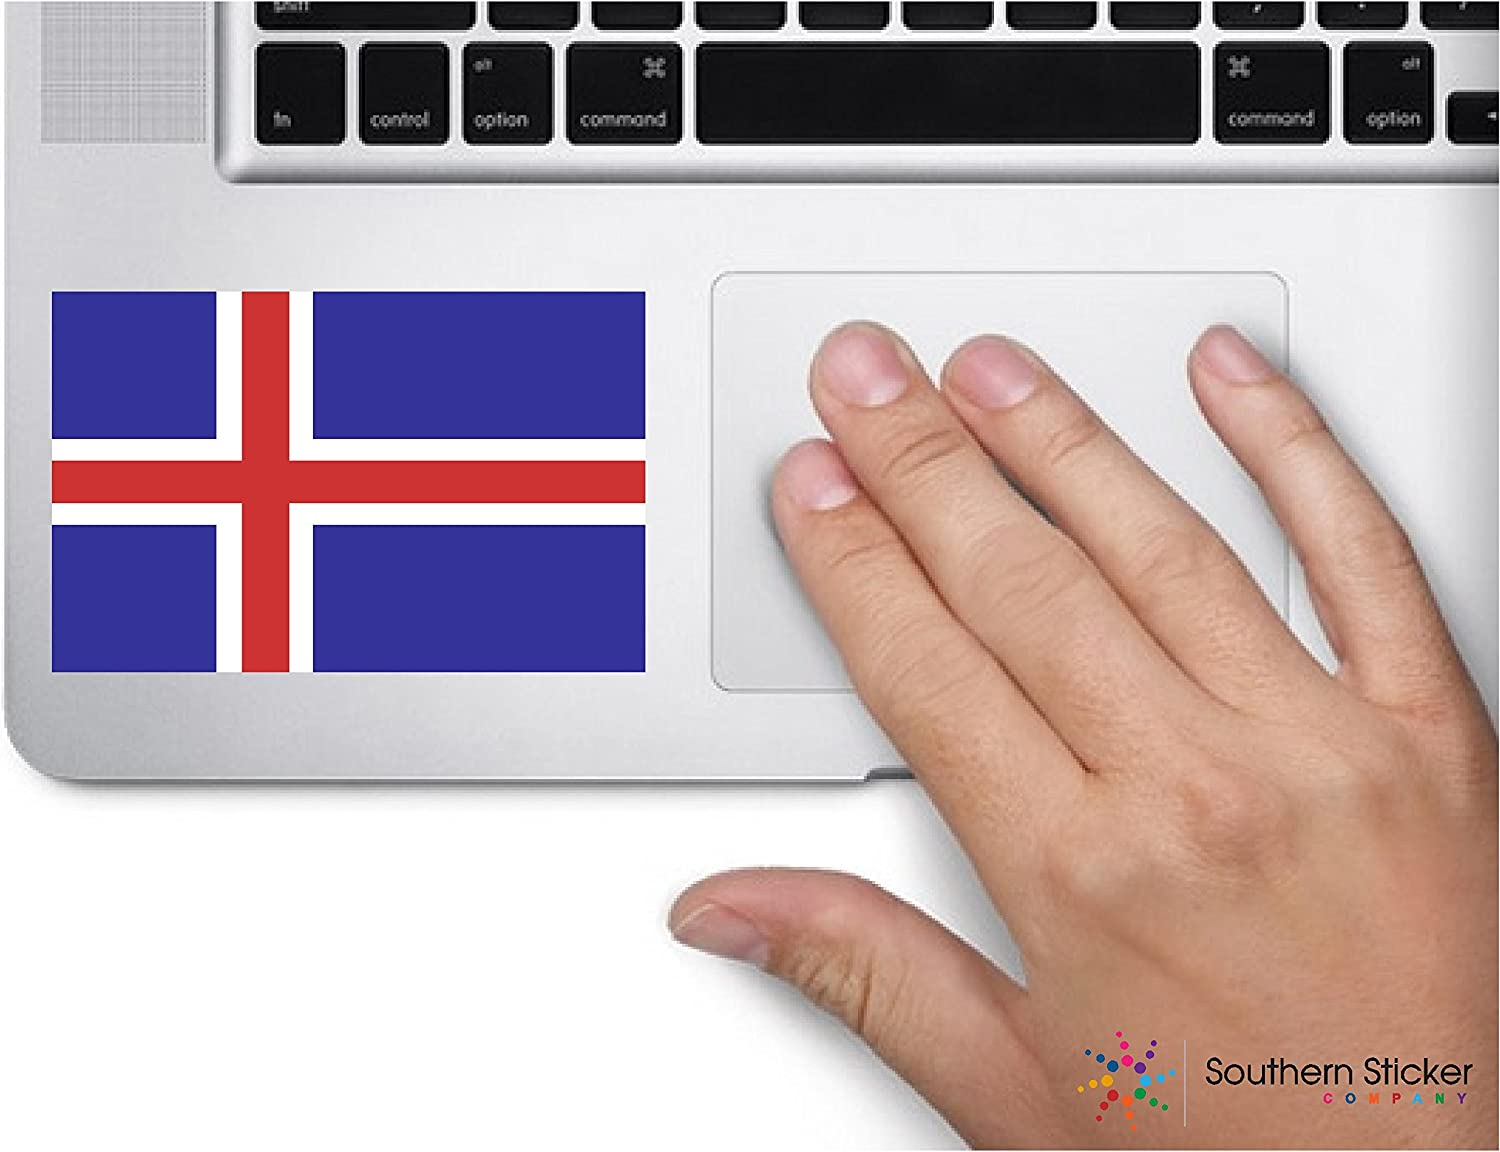 ExpressDecor Country flag Iceland 4x2.5 inches funny stickers for construction hard hat pro union working men lunch box tool box symbol window motorcycle biker car - Made and shipped in USA